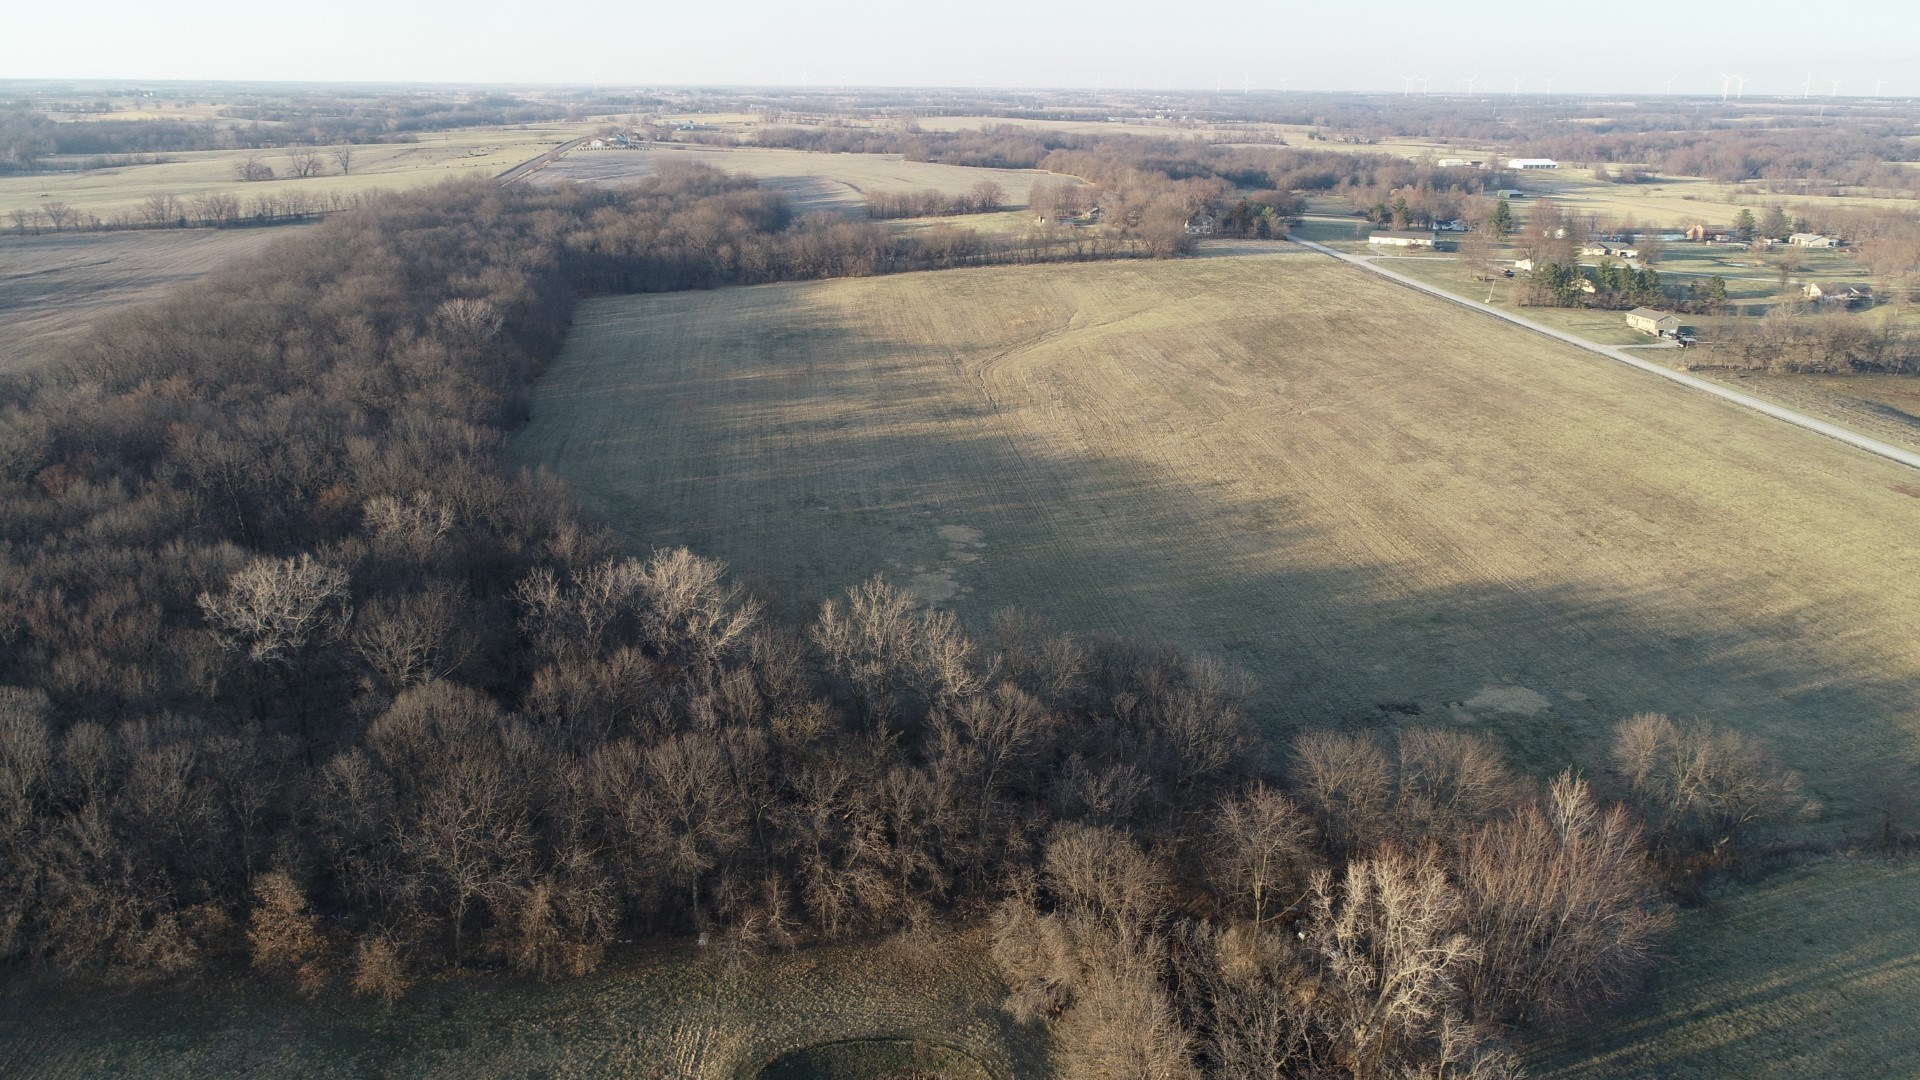 TRACT 2 - 20+/- Acres- Building Site- 15 Minutes from St Joe